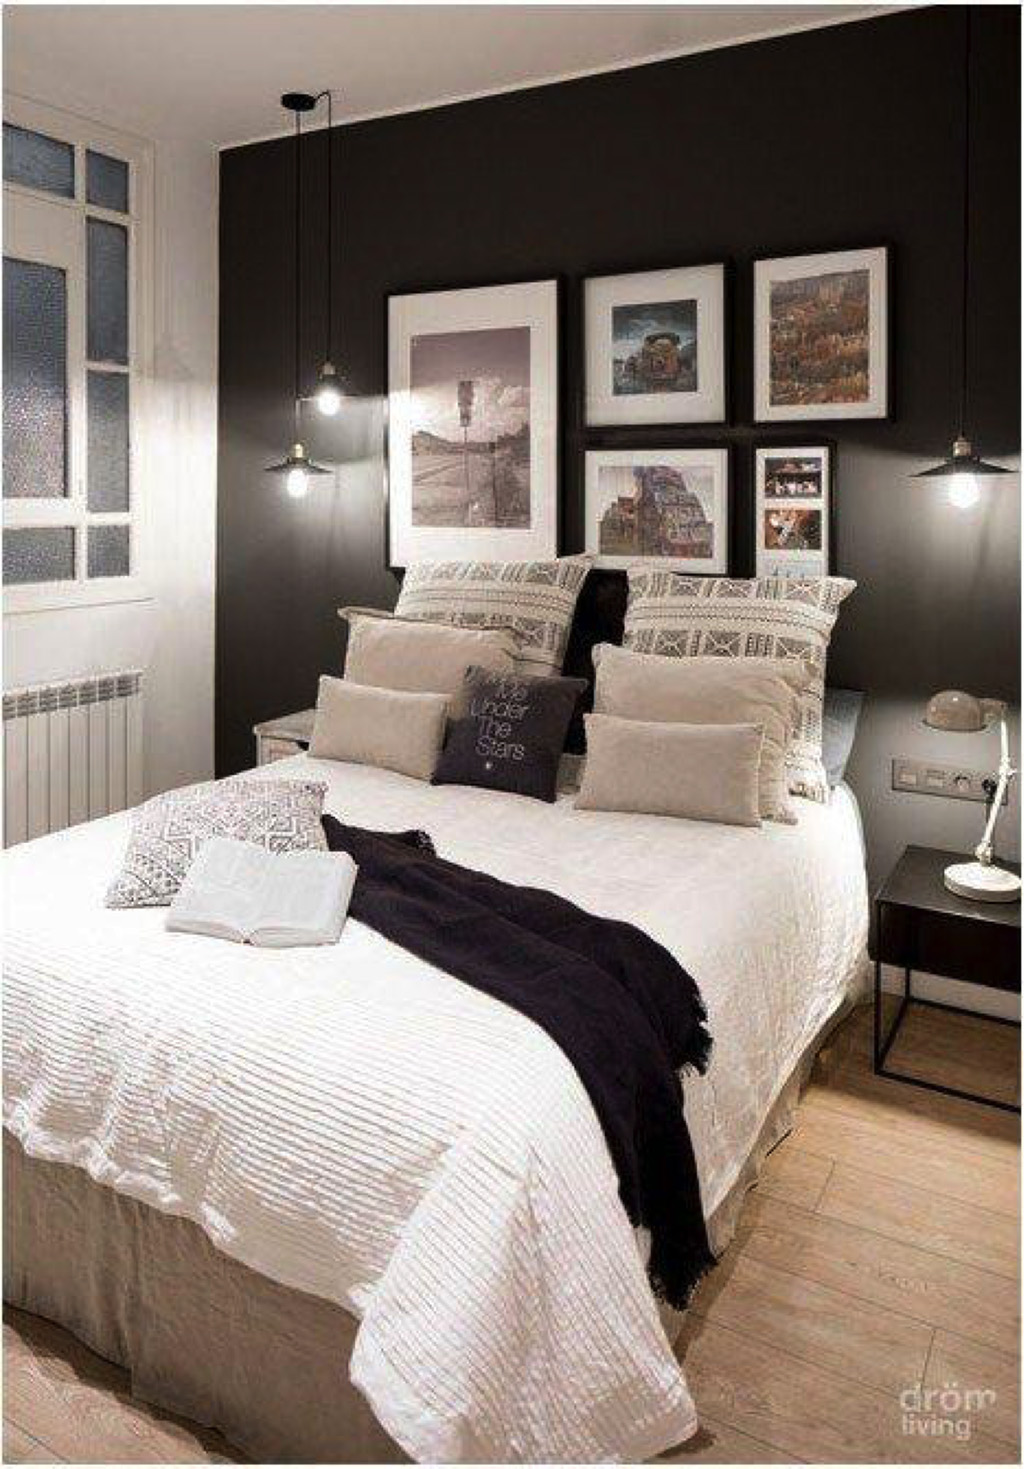 Color Paredes Dormitorio 5 Ideas Para Decorar La Pared Del Cabecero De Tu Cama Neutradecor